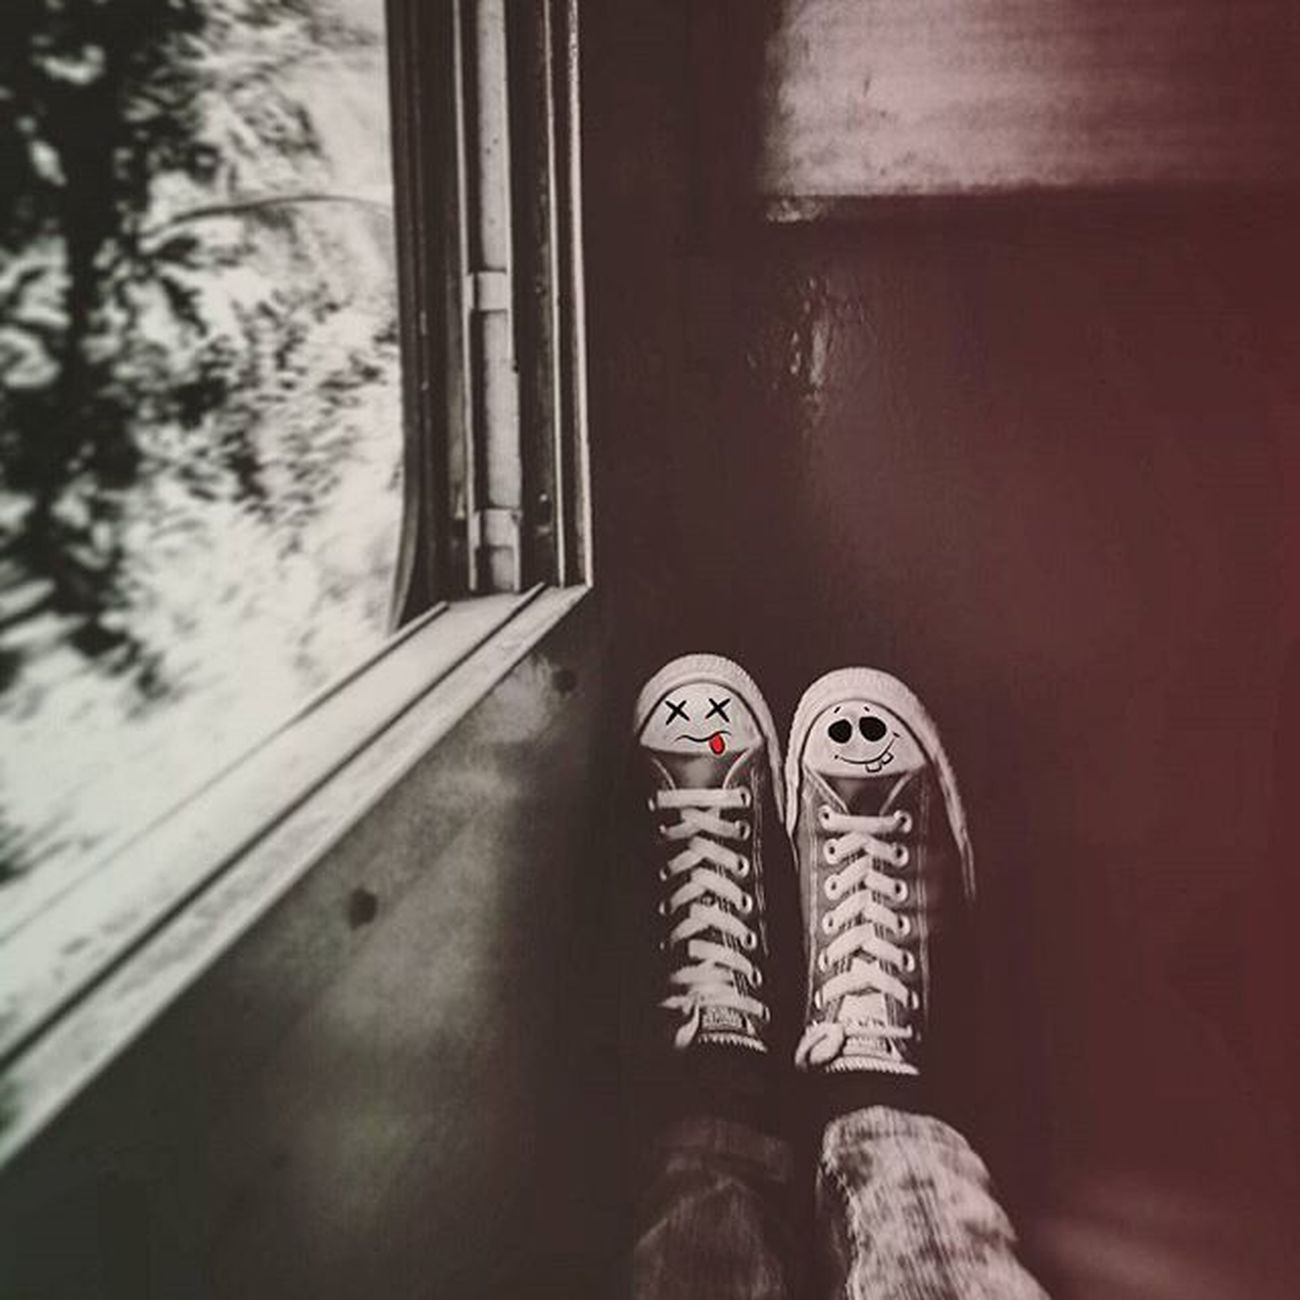 BFFFFFF........Me Converse Allstars Train Trip Travelogue Photography Photowalk Look Love Friendsforever Favourite Youdieismile Insta Instafreak Instamood Bestoftheday Instalike Follow Followforfollow Followmefollowyou L4l F2f F4F